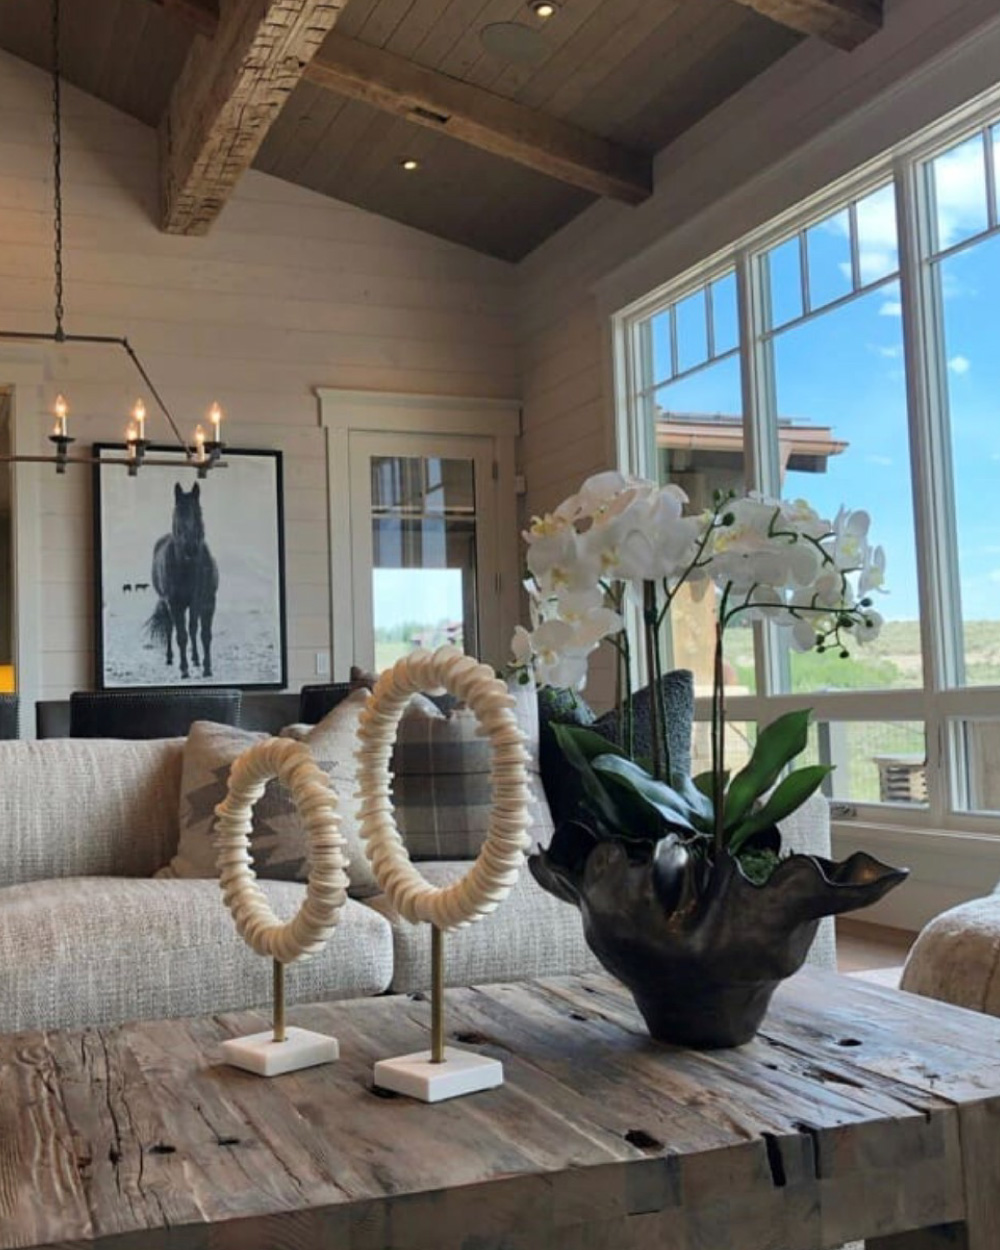 Dining table with orchid and art